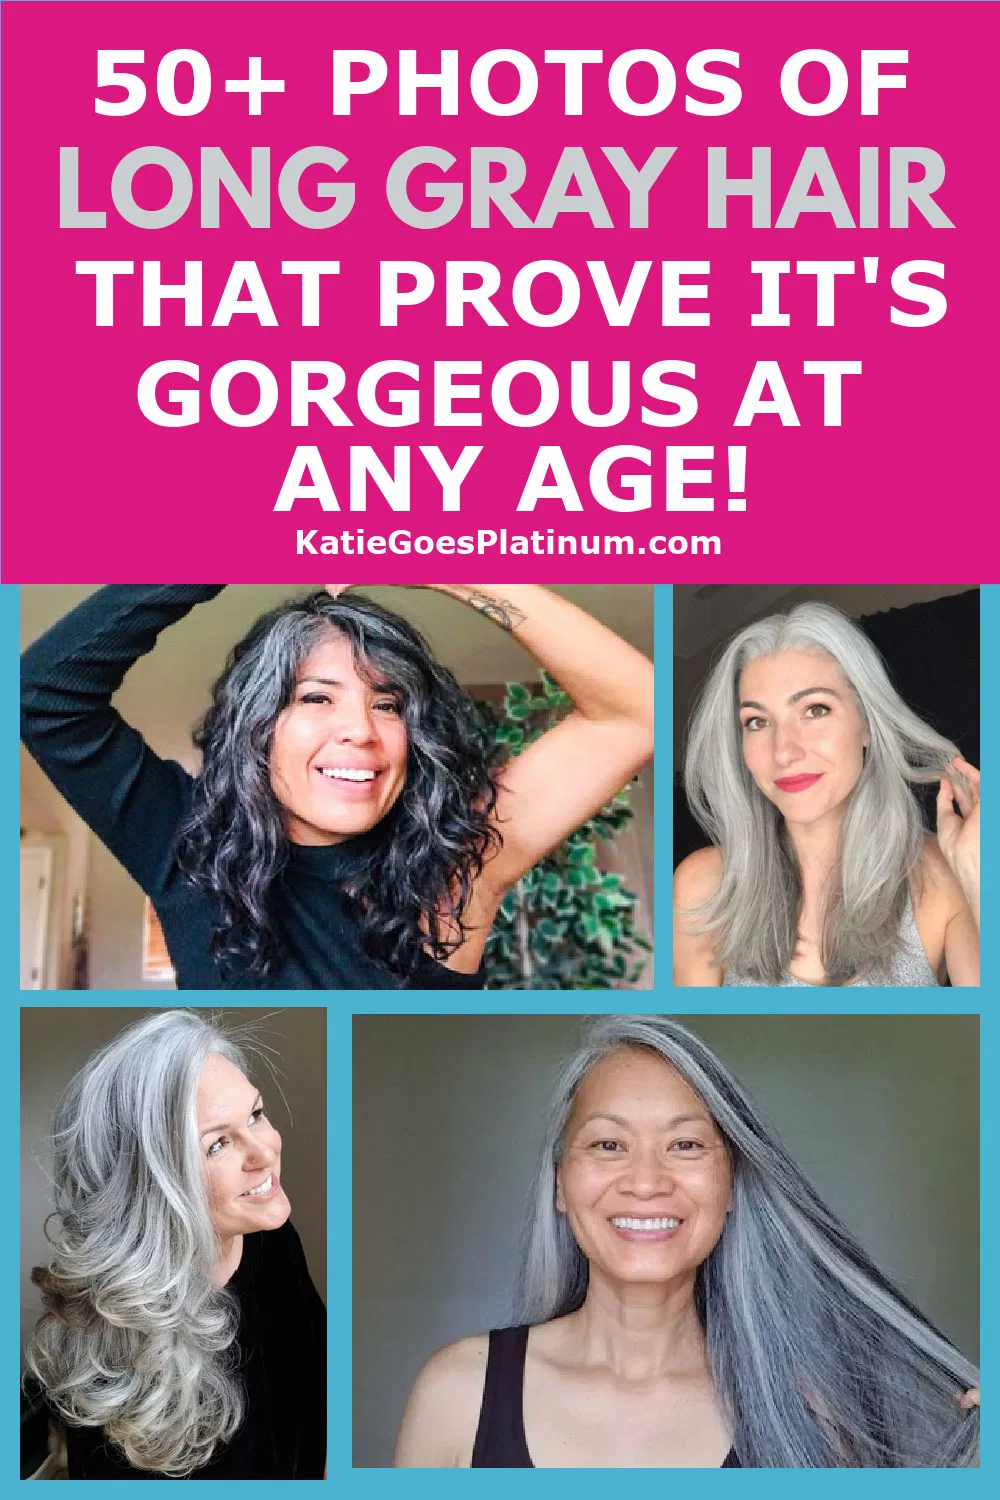 Long Gray Hair Is Gorgeous At Any Age 50 Photos That Prove It In 2020 Grey Hair And Glasses Long Gray Hair Grey Hair Inspiration